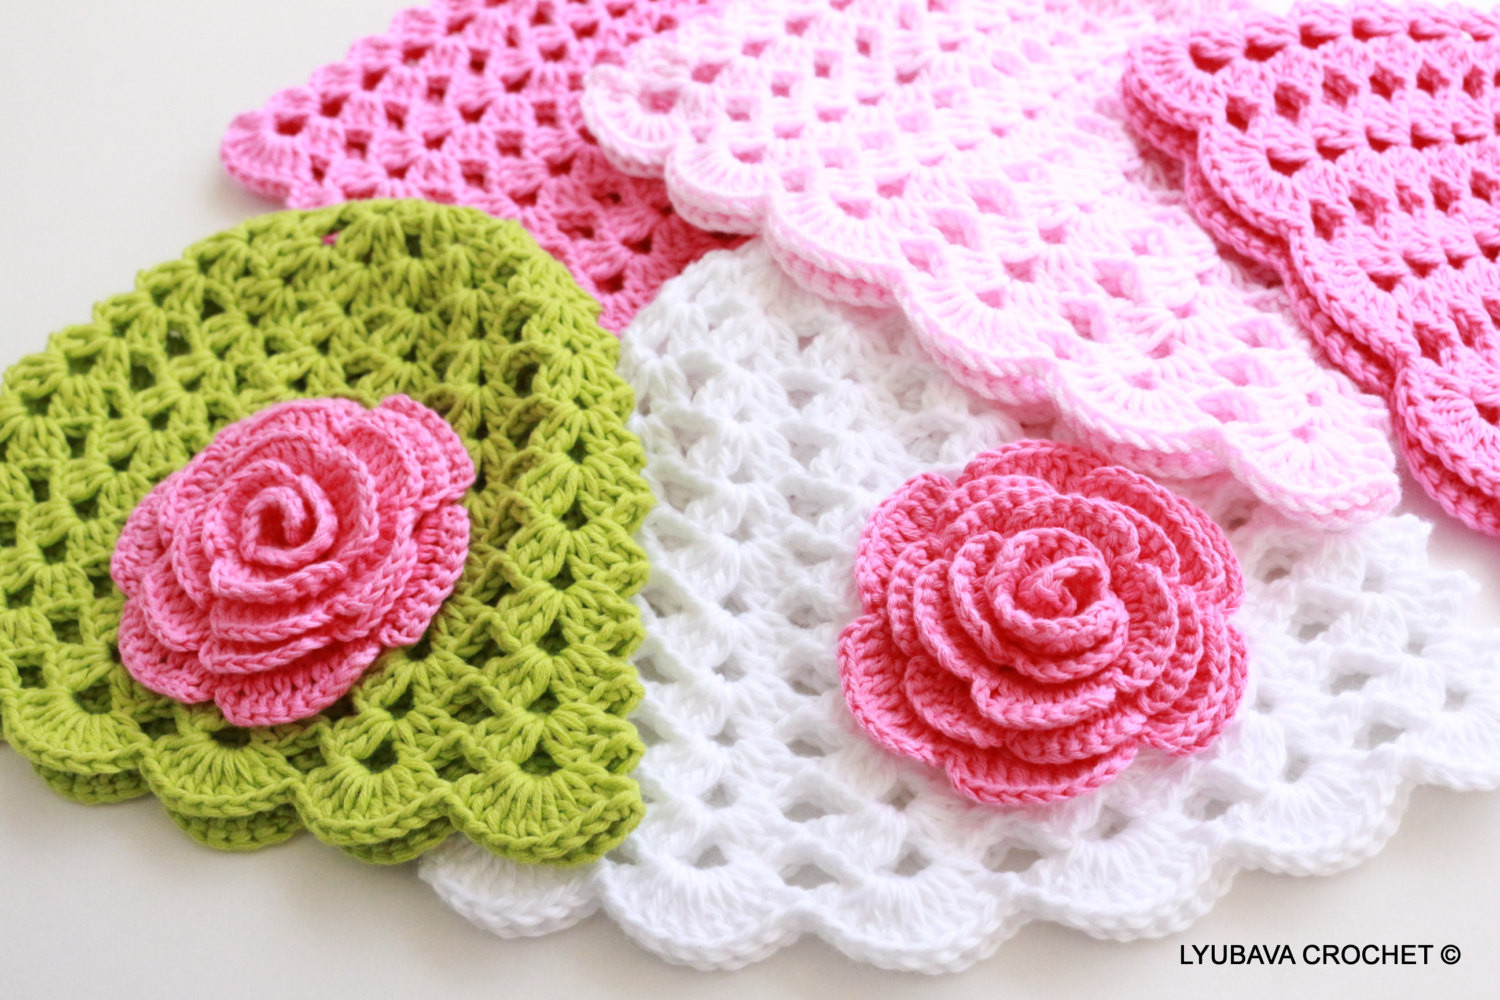 Best Of Crochet Baby Hat with Rose Flower Pattern Baby Girl Gift Diy Crochet Flowers for Hats Free Patterns Of Luxury 25 Best Ideas About Crochet Hats On Pinterest Crochet Flowers for Hats Free Patterns